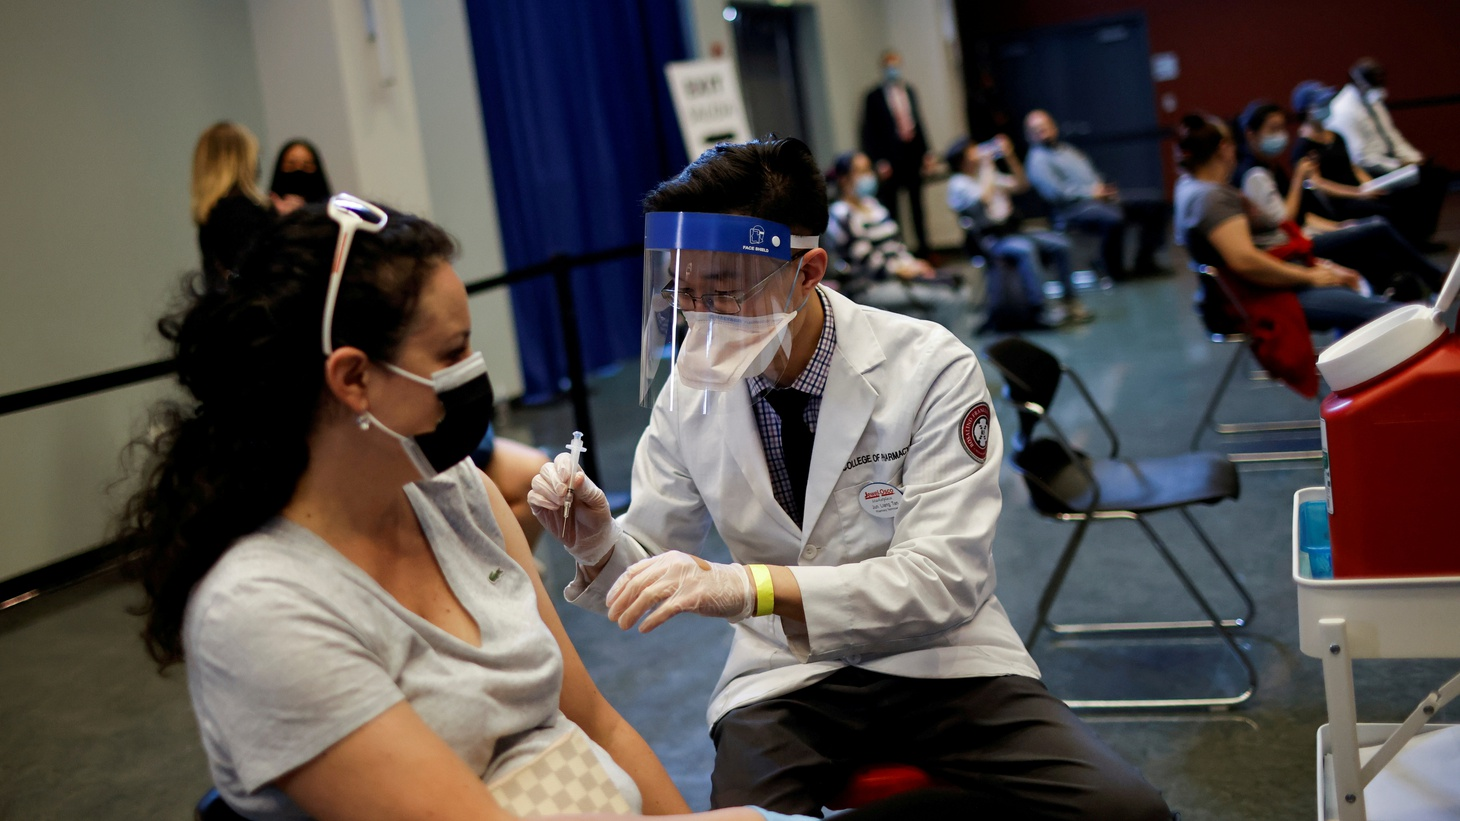 A woman receives a dose of the Johnson & Johnson coronavirus disease (COVID-19) vaccine at vaccination center in Chinatown, in Chicago, Illinois, U.S., April 6, 2021.